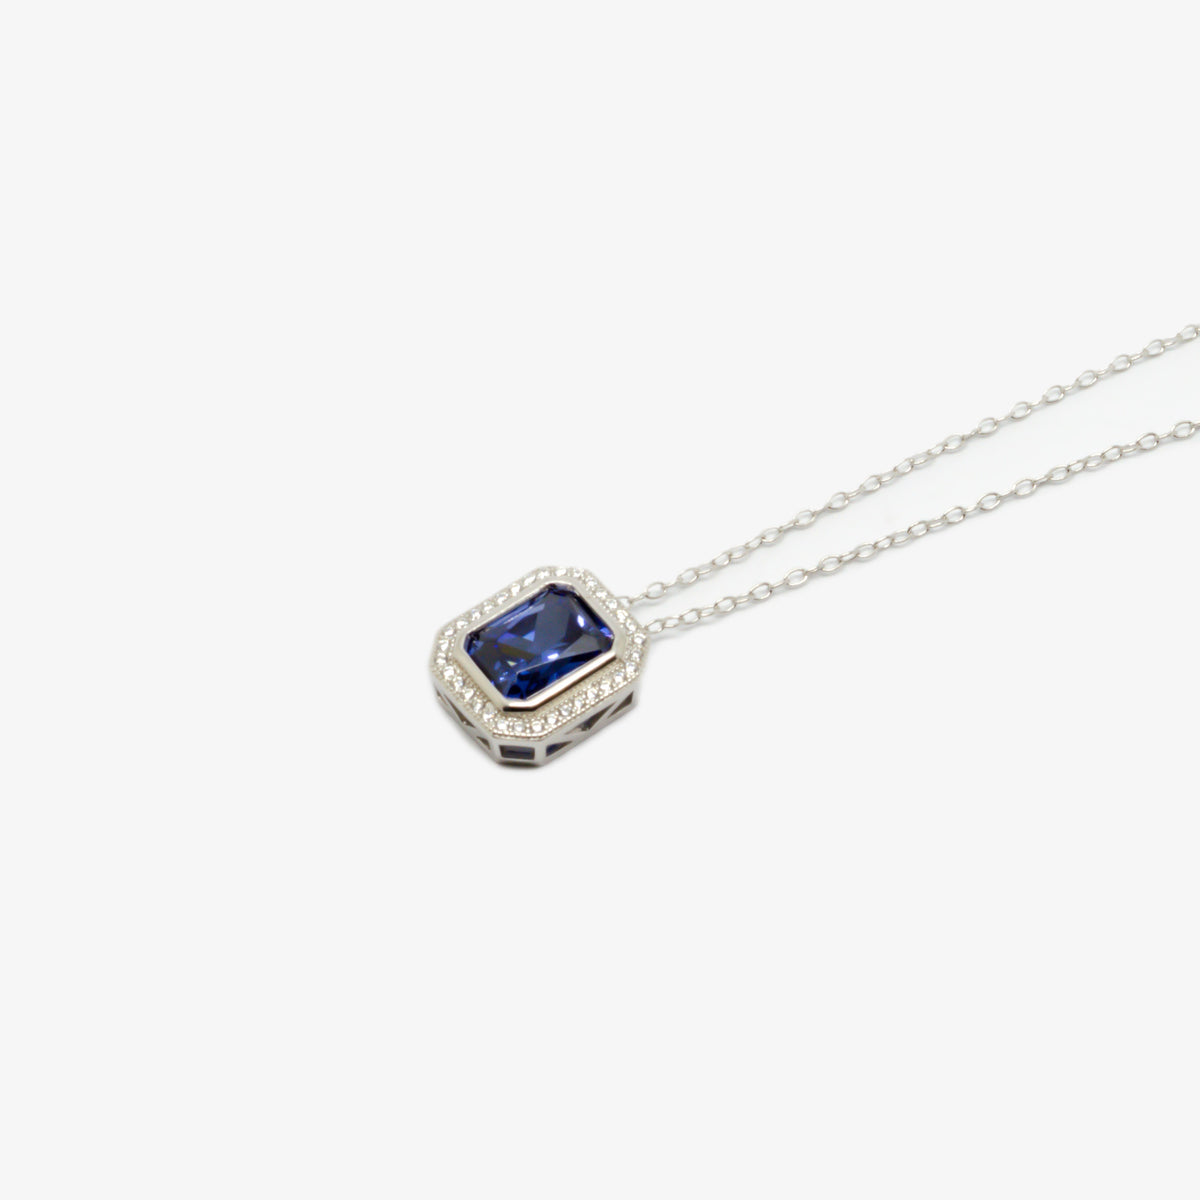 Close up and from the side picture of the dark blue cubic zirconia pendant necklace.